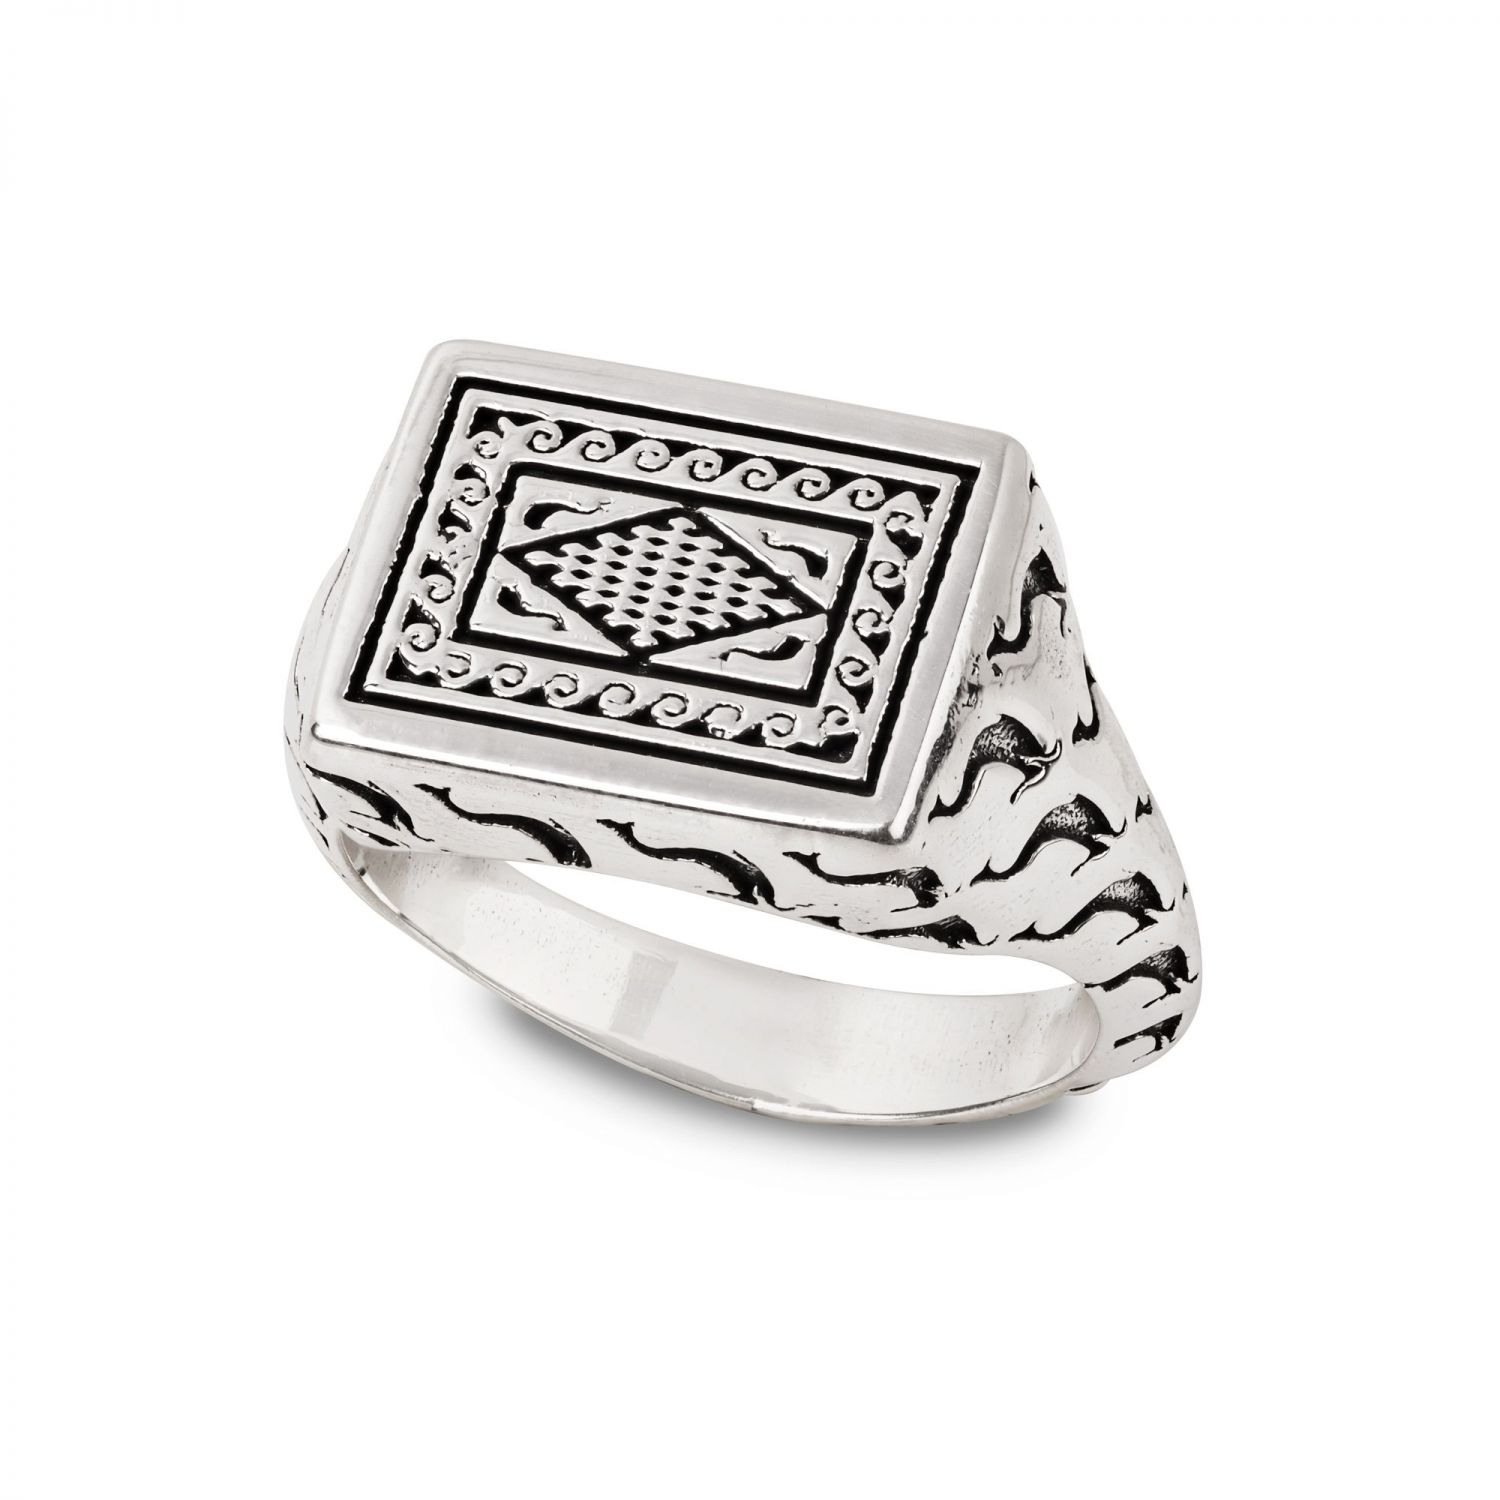 Ring with dolphins mosaic (27872)